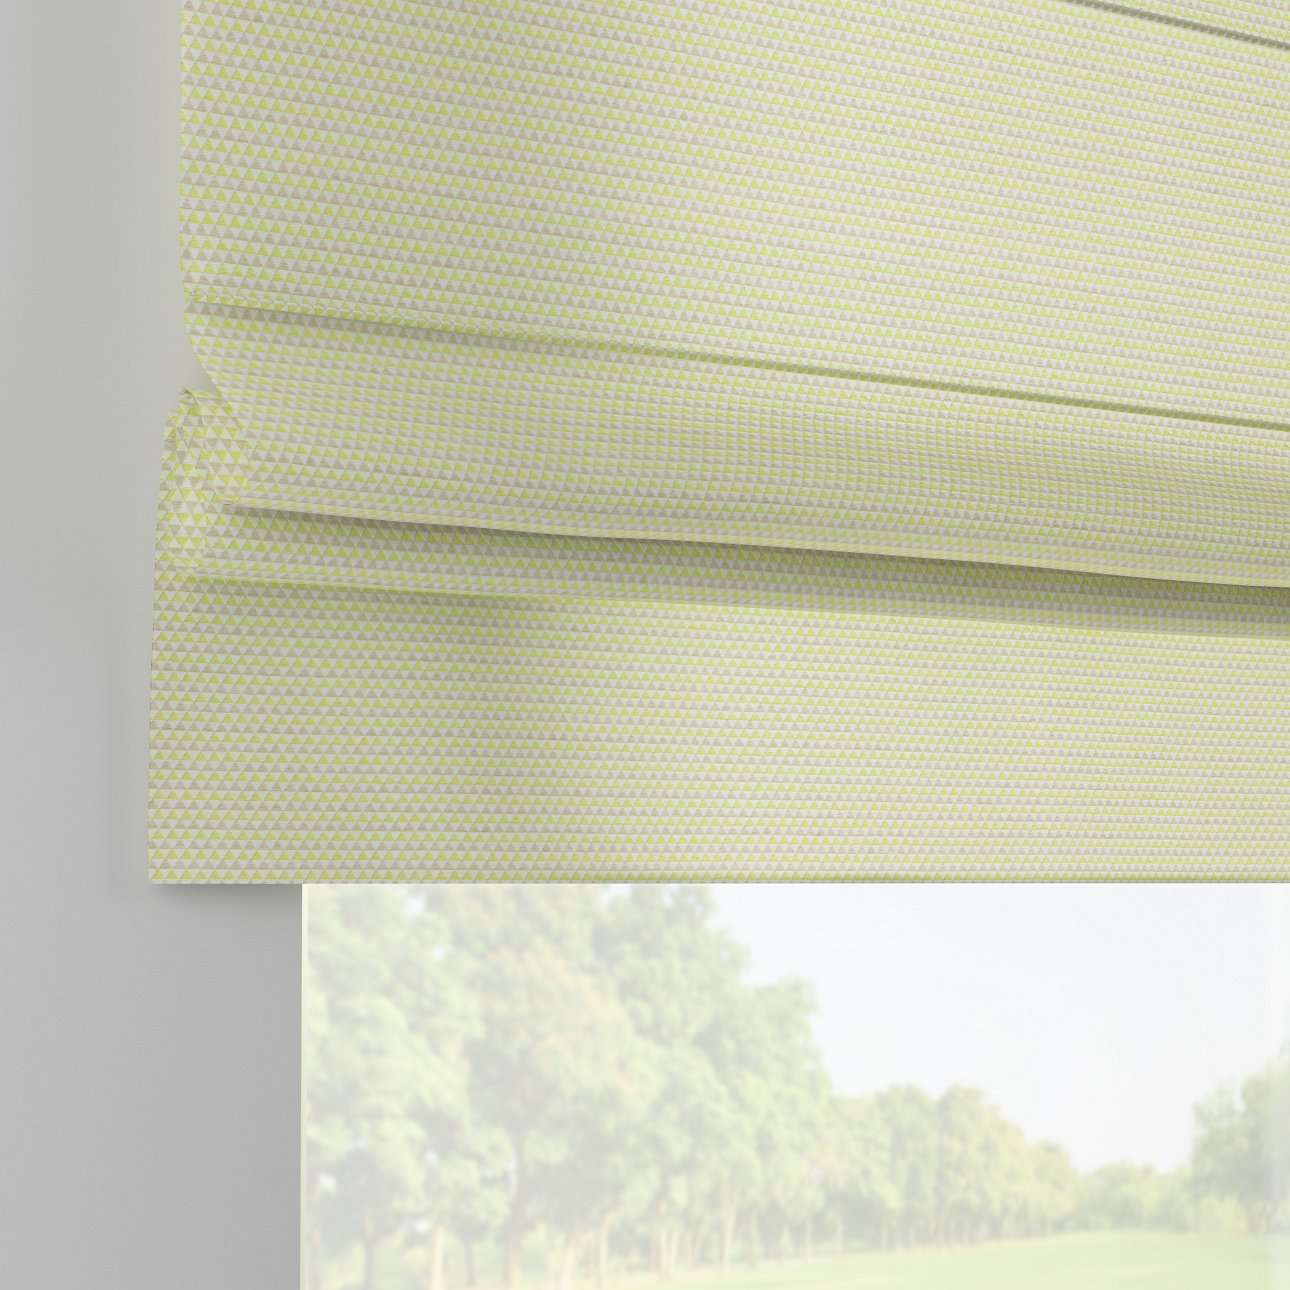 Padva roman blind  80 x 170 cm (31.5 x 67 inch) in collection Rustica, fabric: 140-34